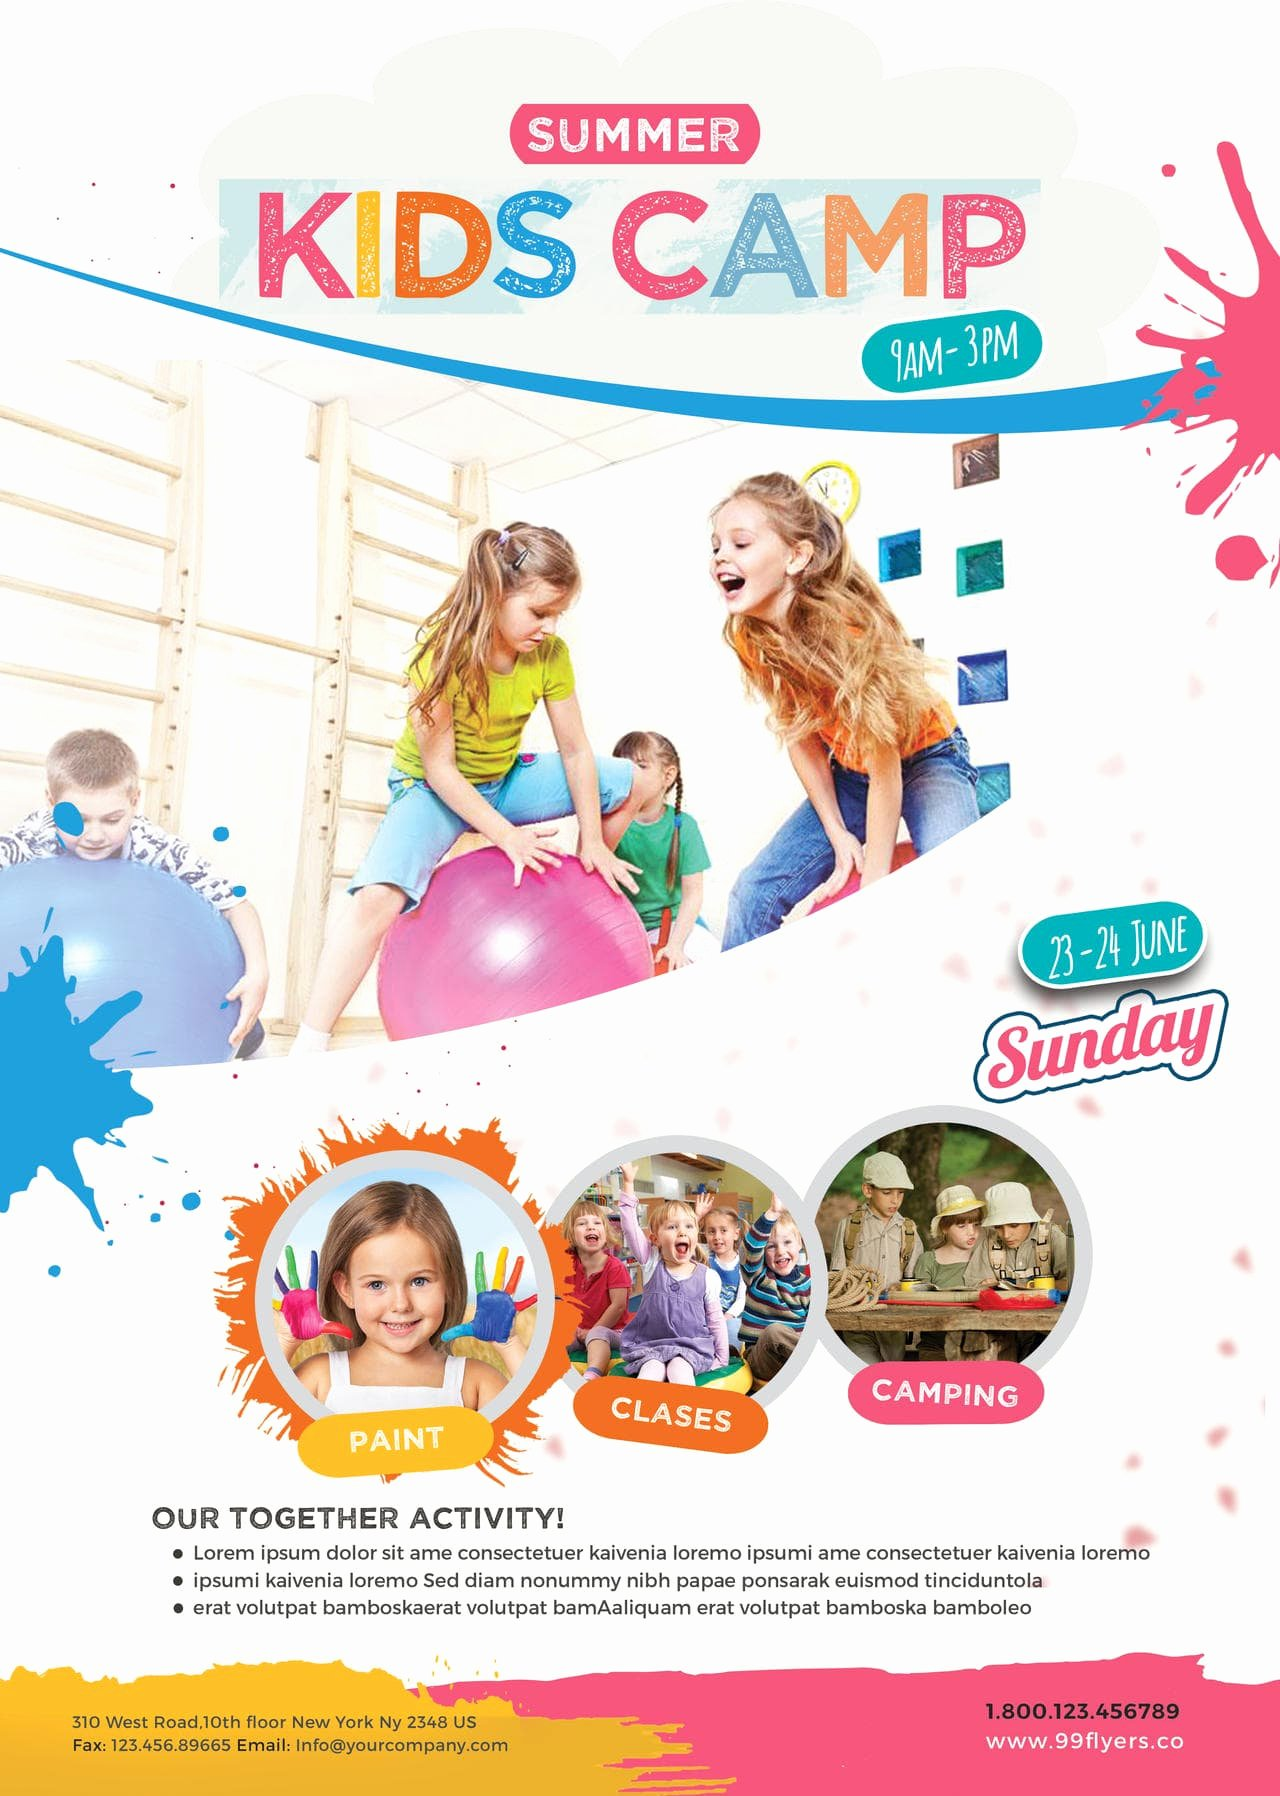 Summer Camp Schedules Template Best Of Kids Summer Camp Free Psd Flyer Template Free Psd Flyer Templates Brochures Mockup & More